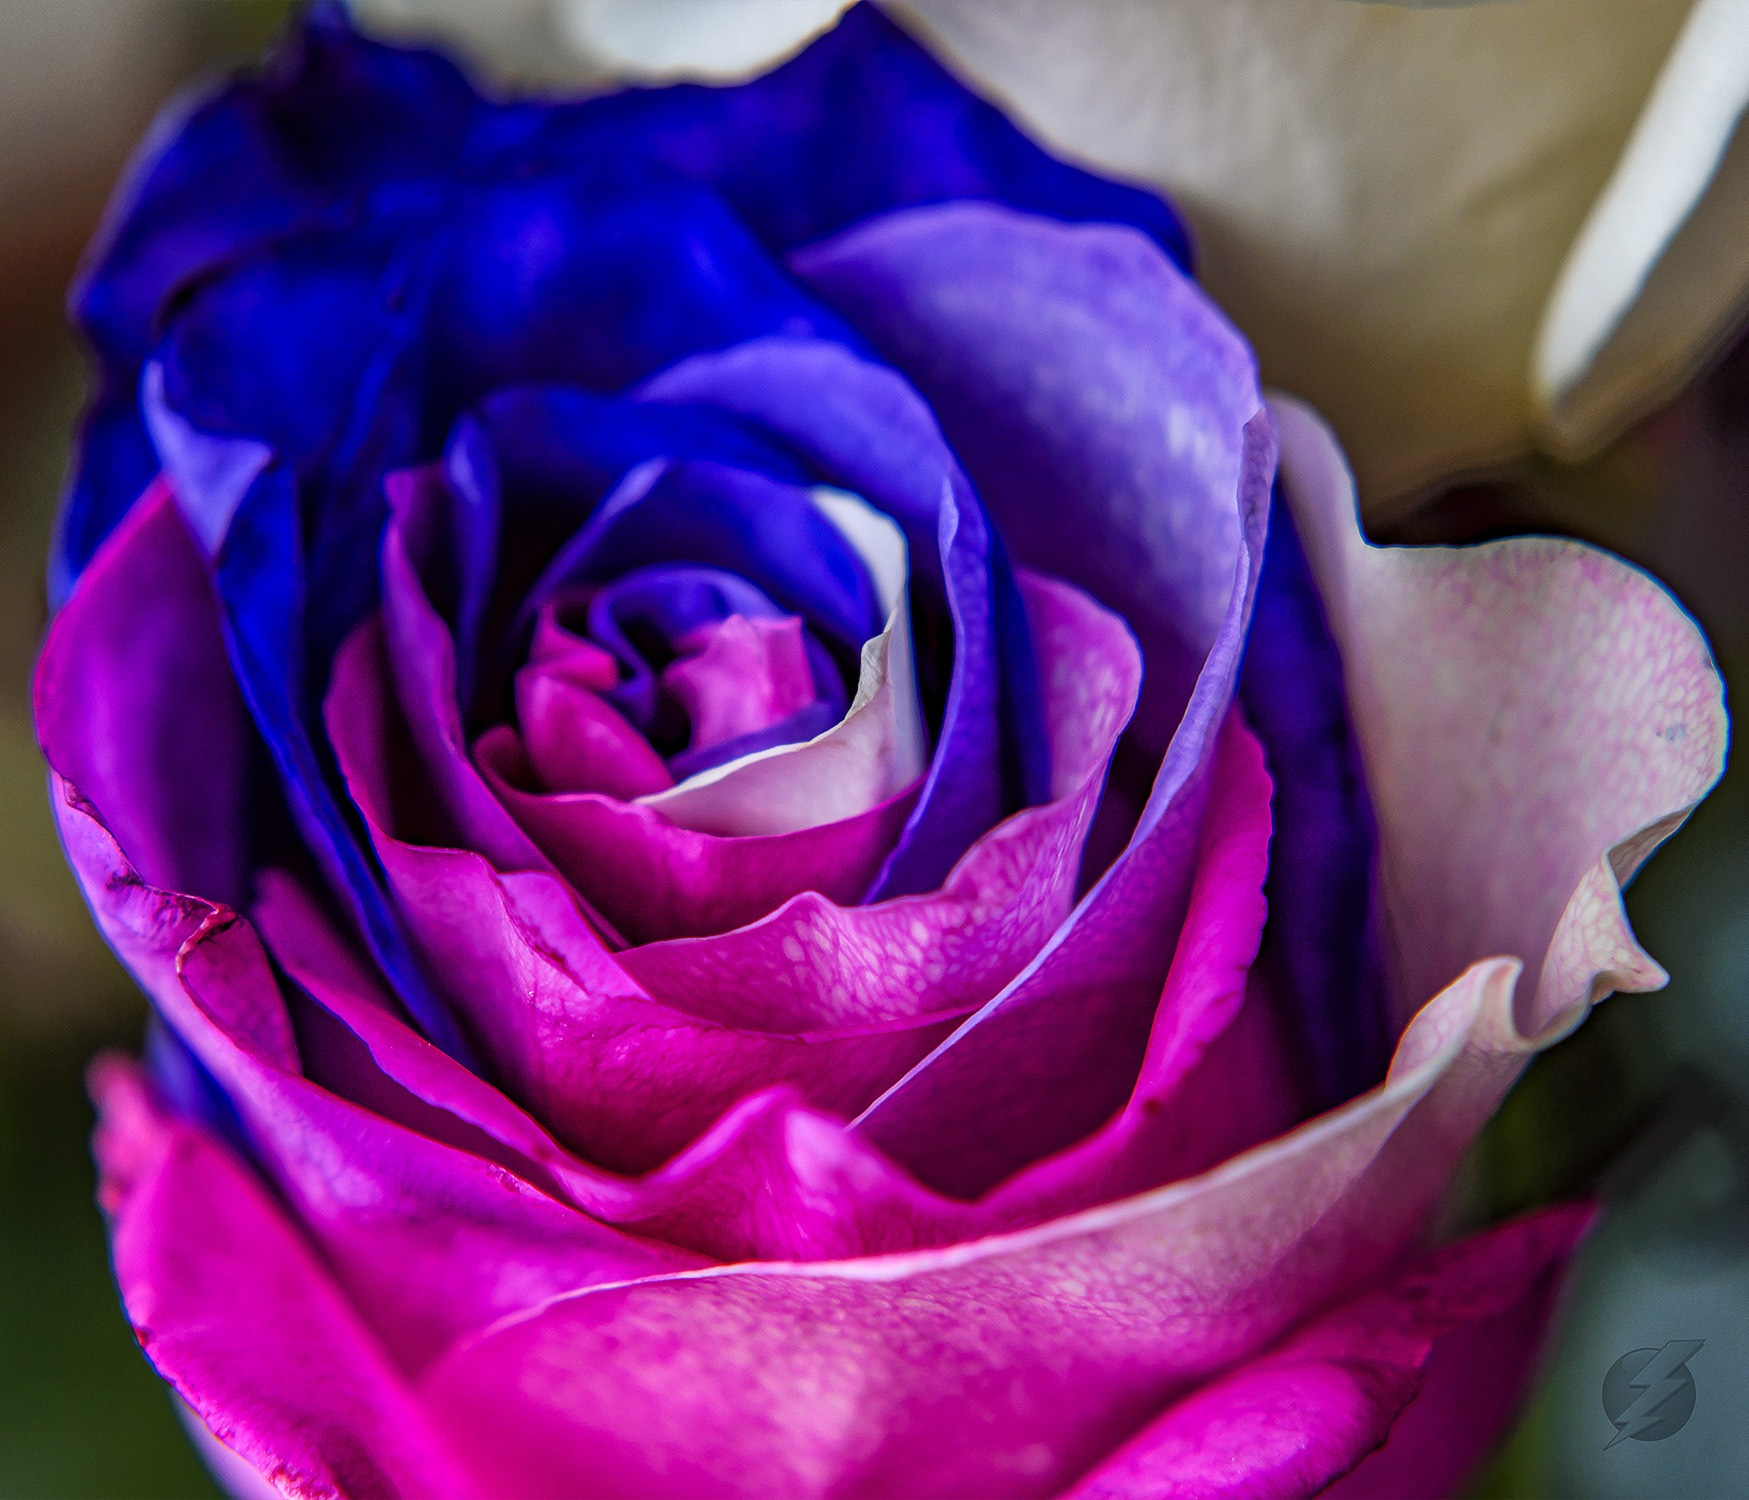 Colourful rose by FixPixPro